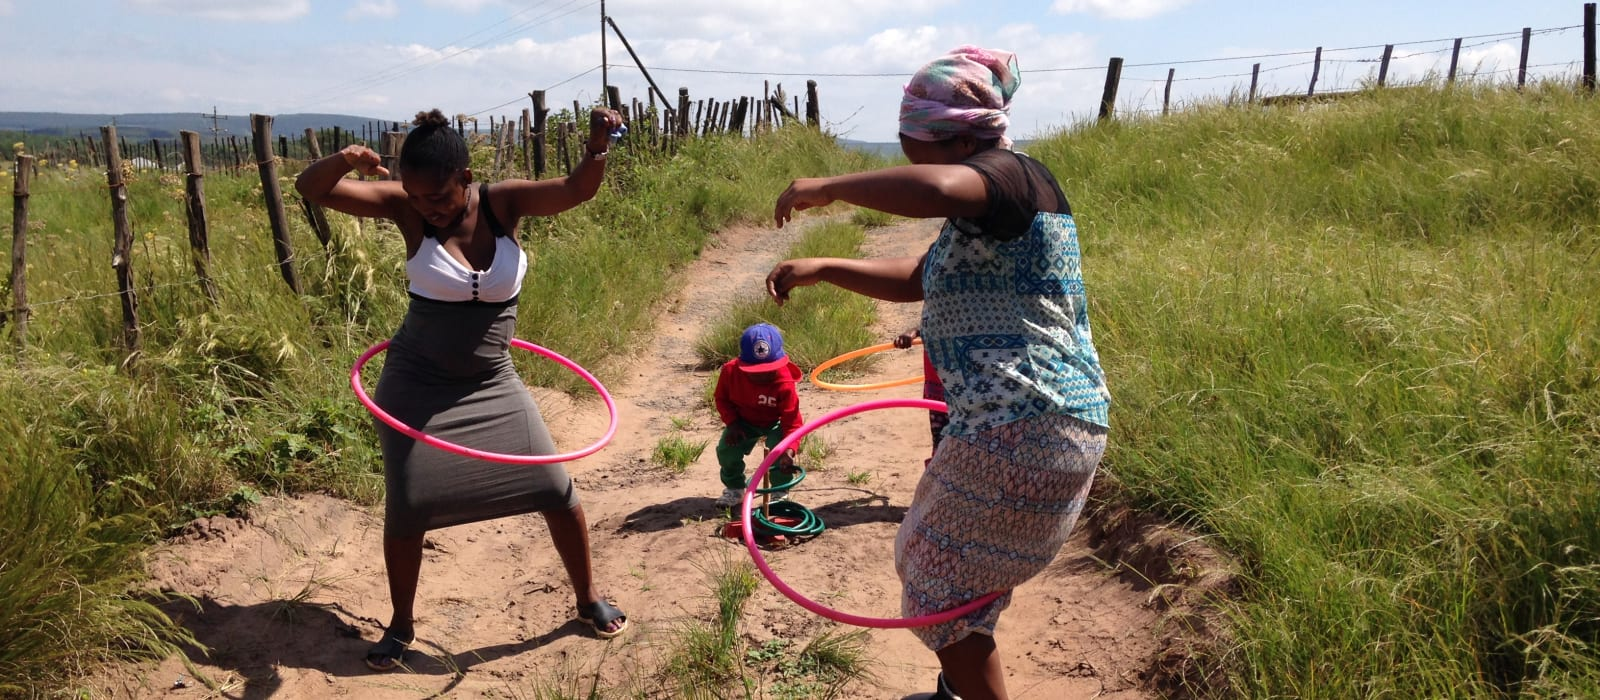 Two women hula hooping on rural track